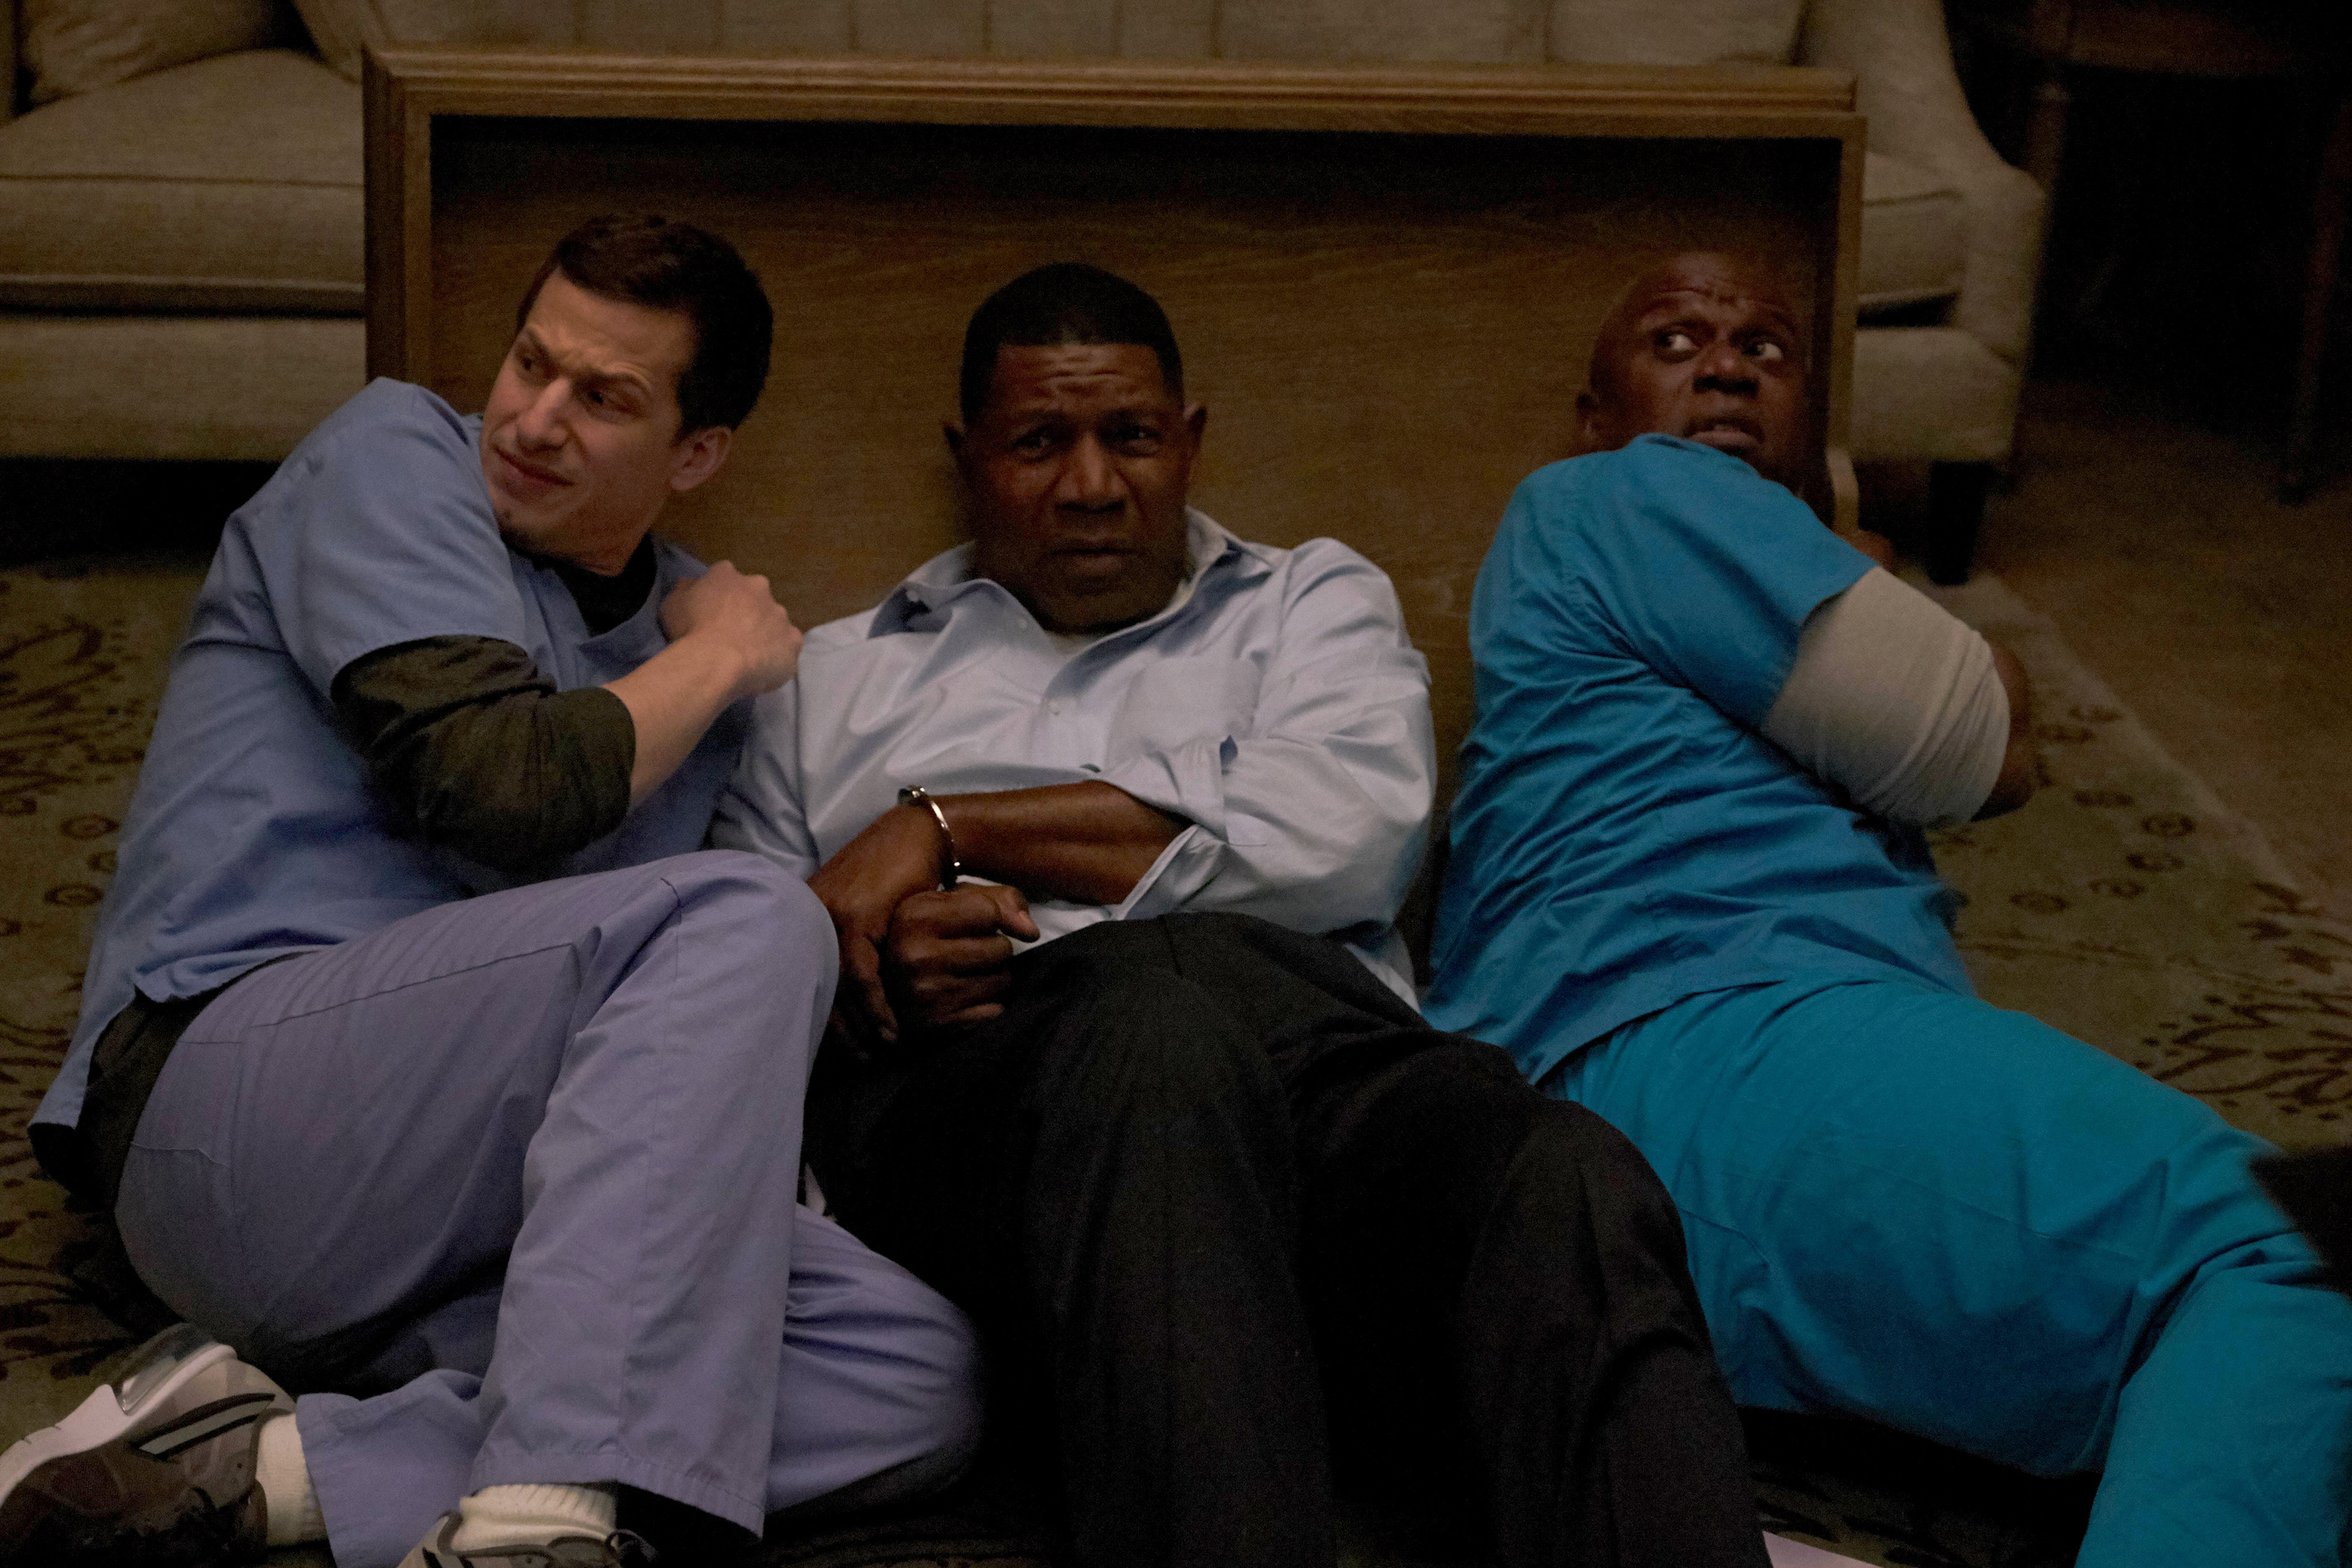 Brooklyn Nine-Nine 323-10